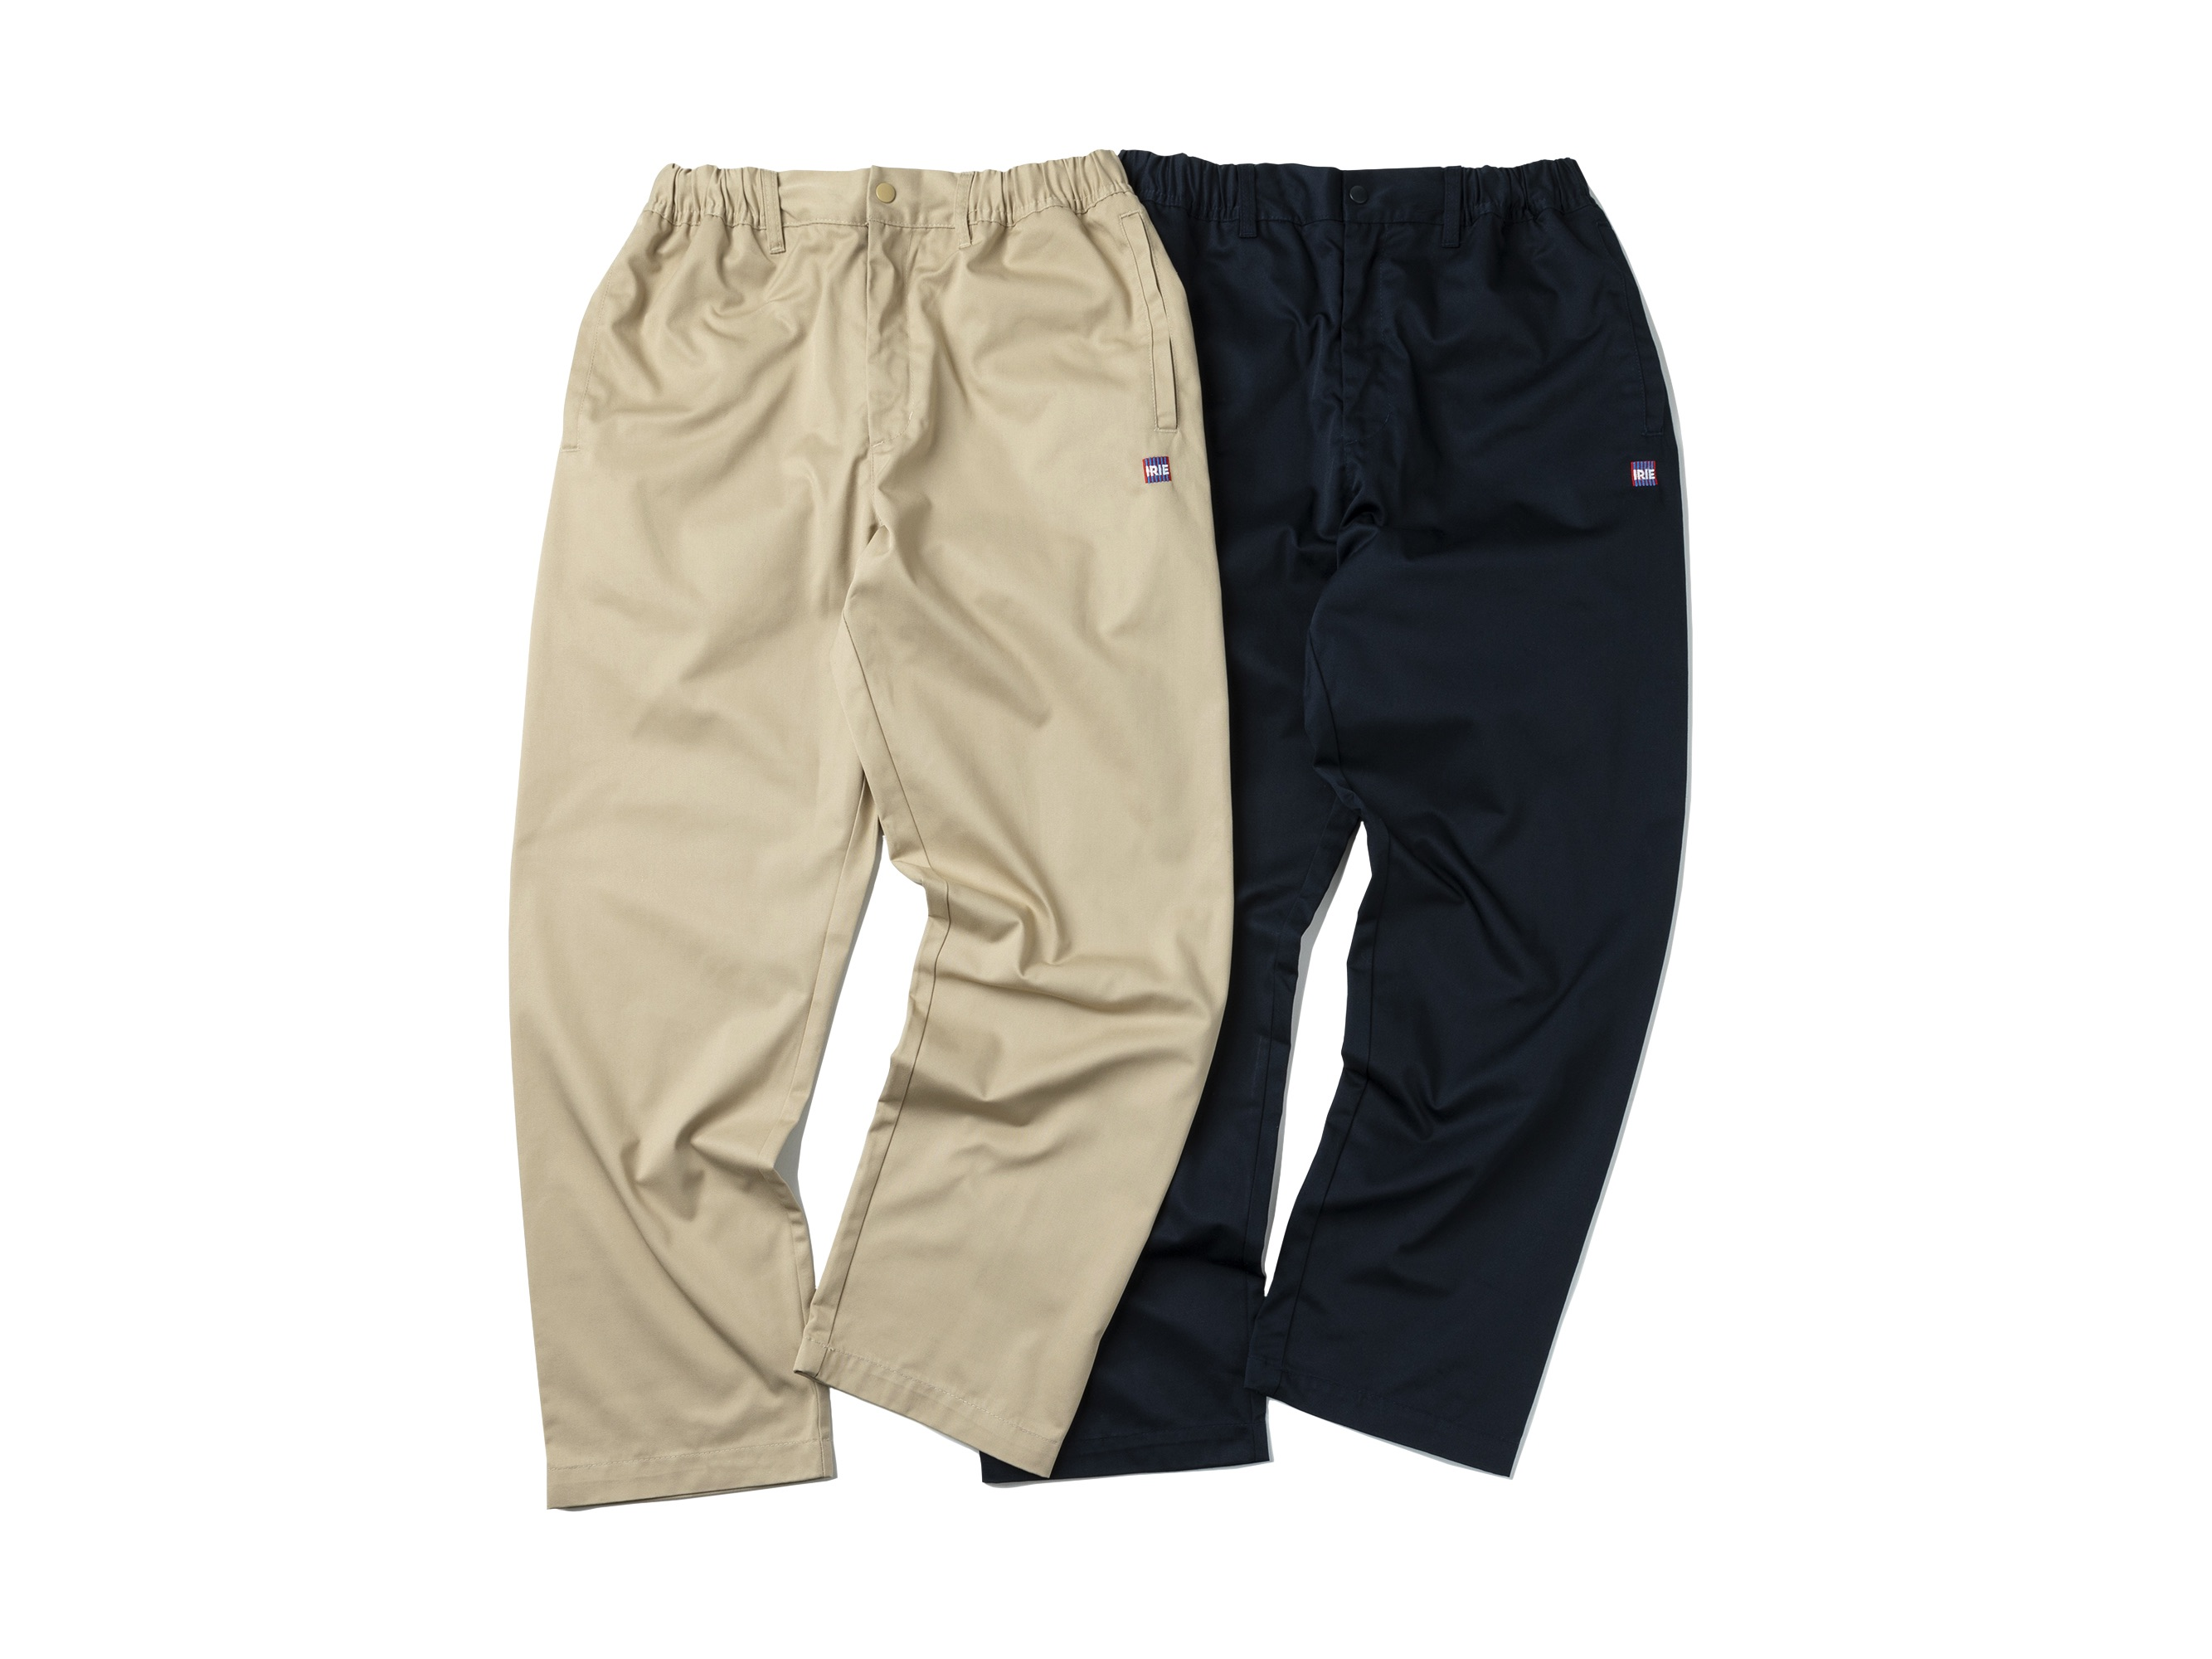 IRIE DRIP EASY PANTS - IRIE by irielife